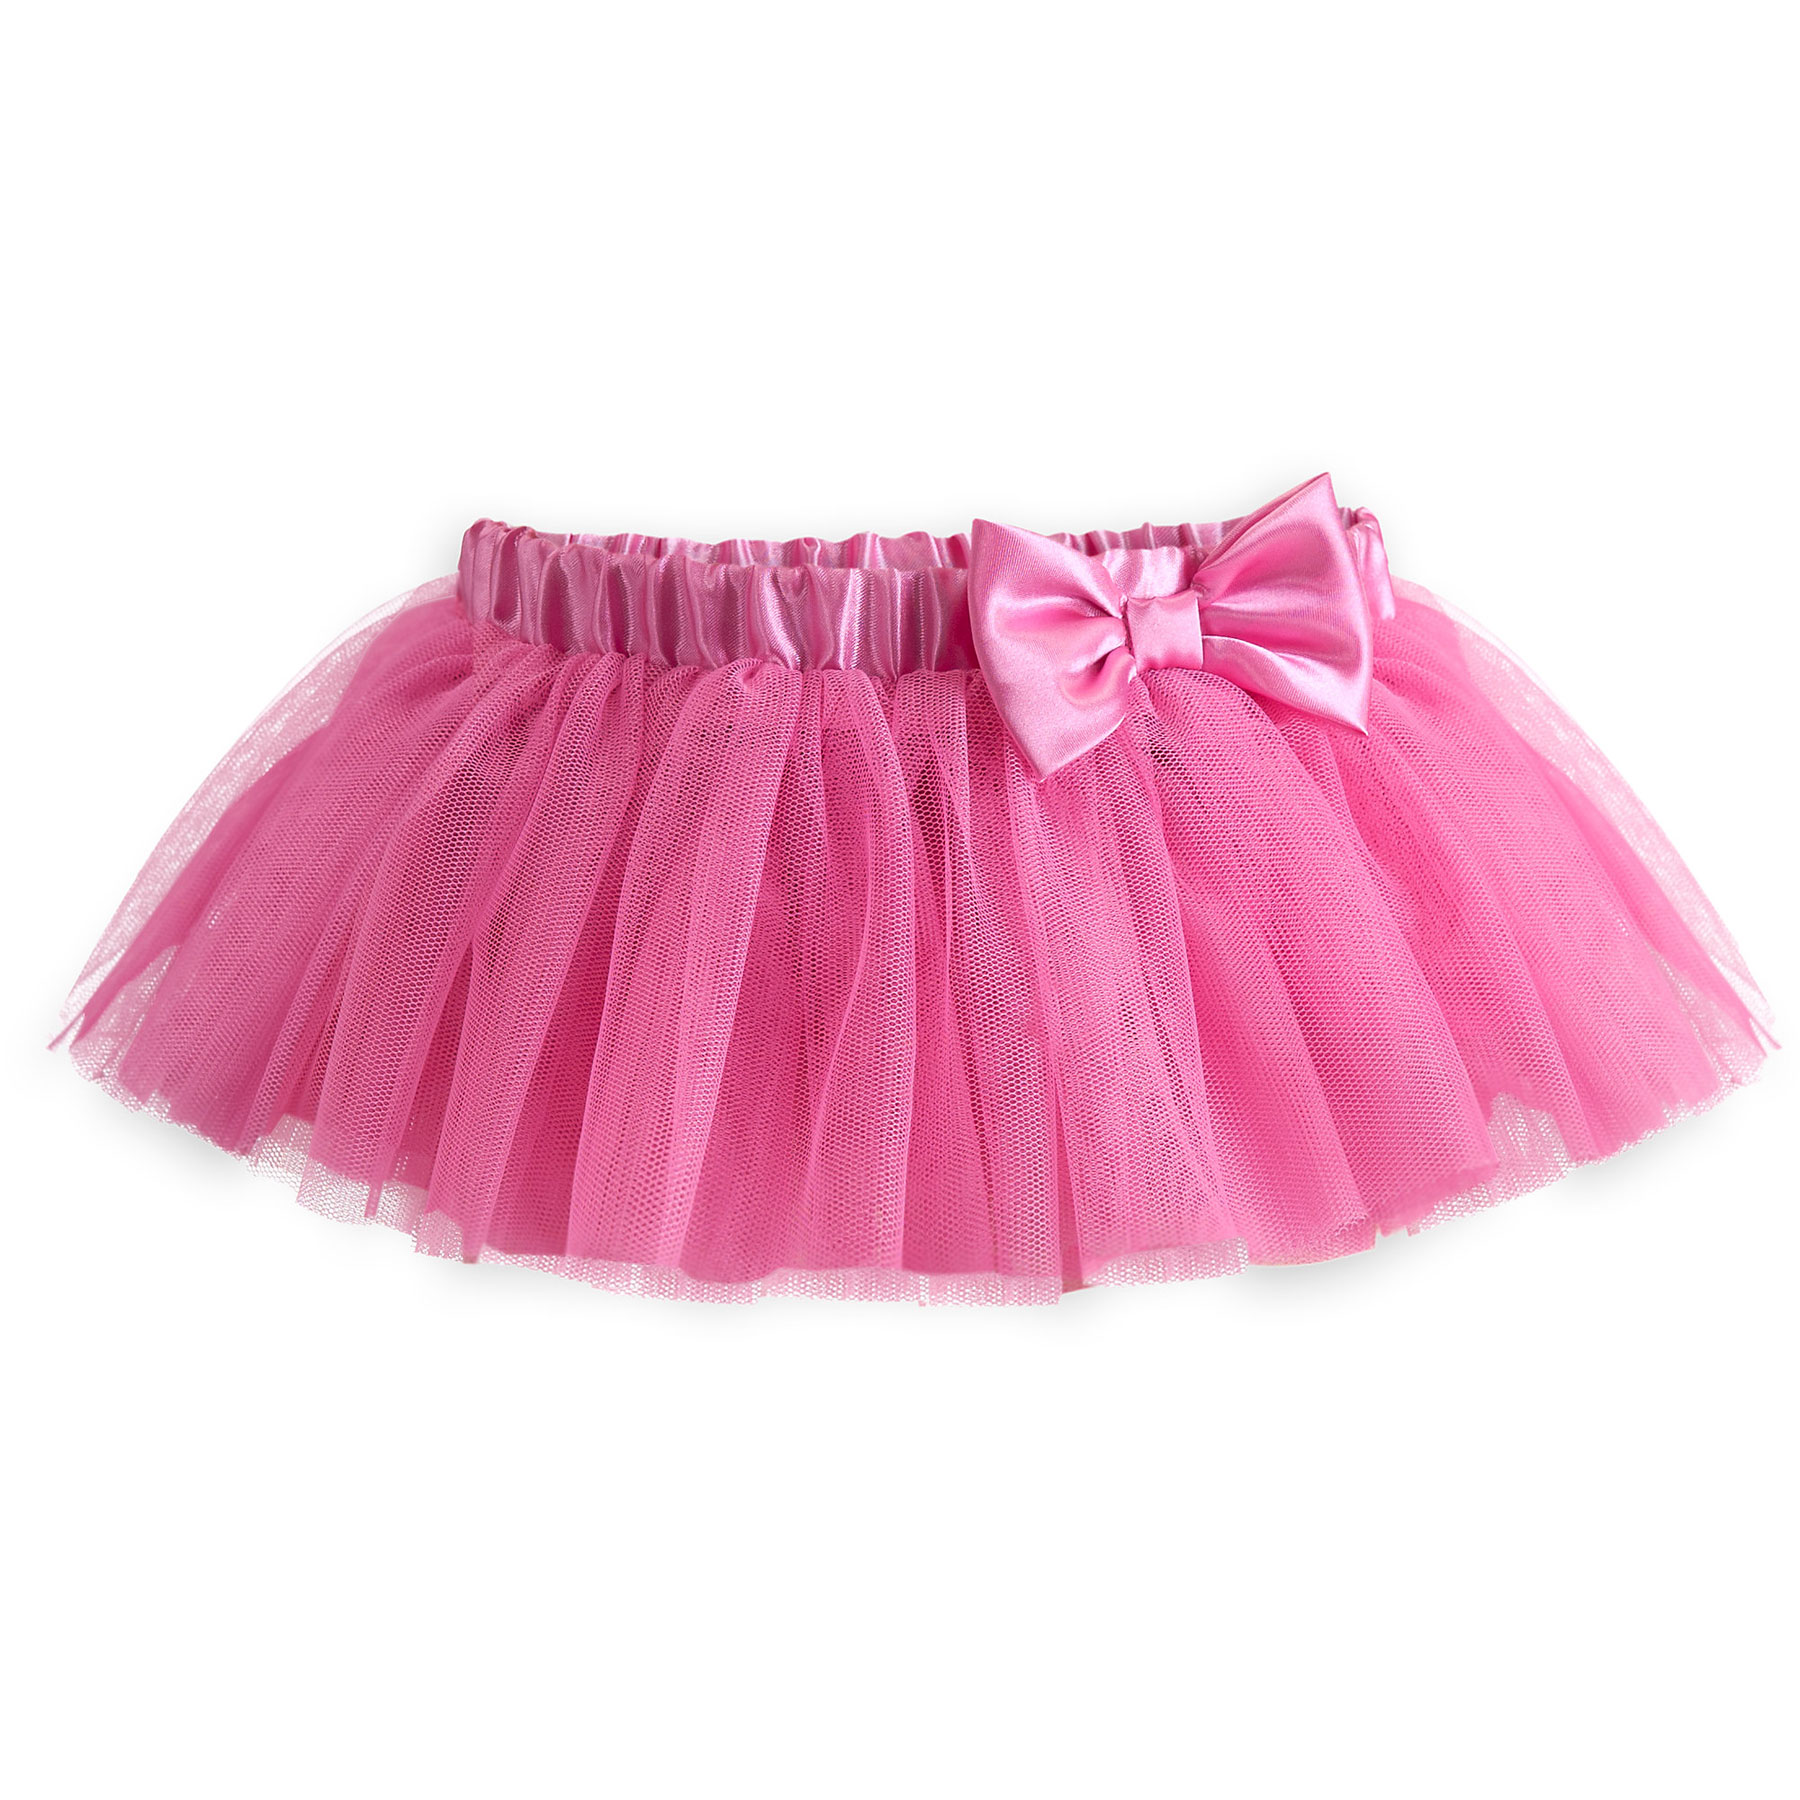 Pink Tutu View   Free Images At Clker Com   Vector Clip Art Online